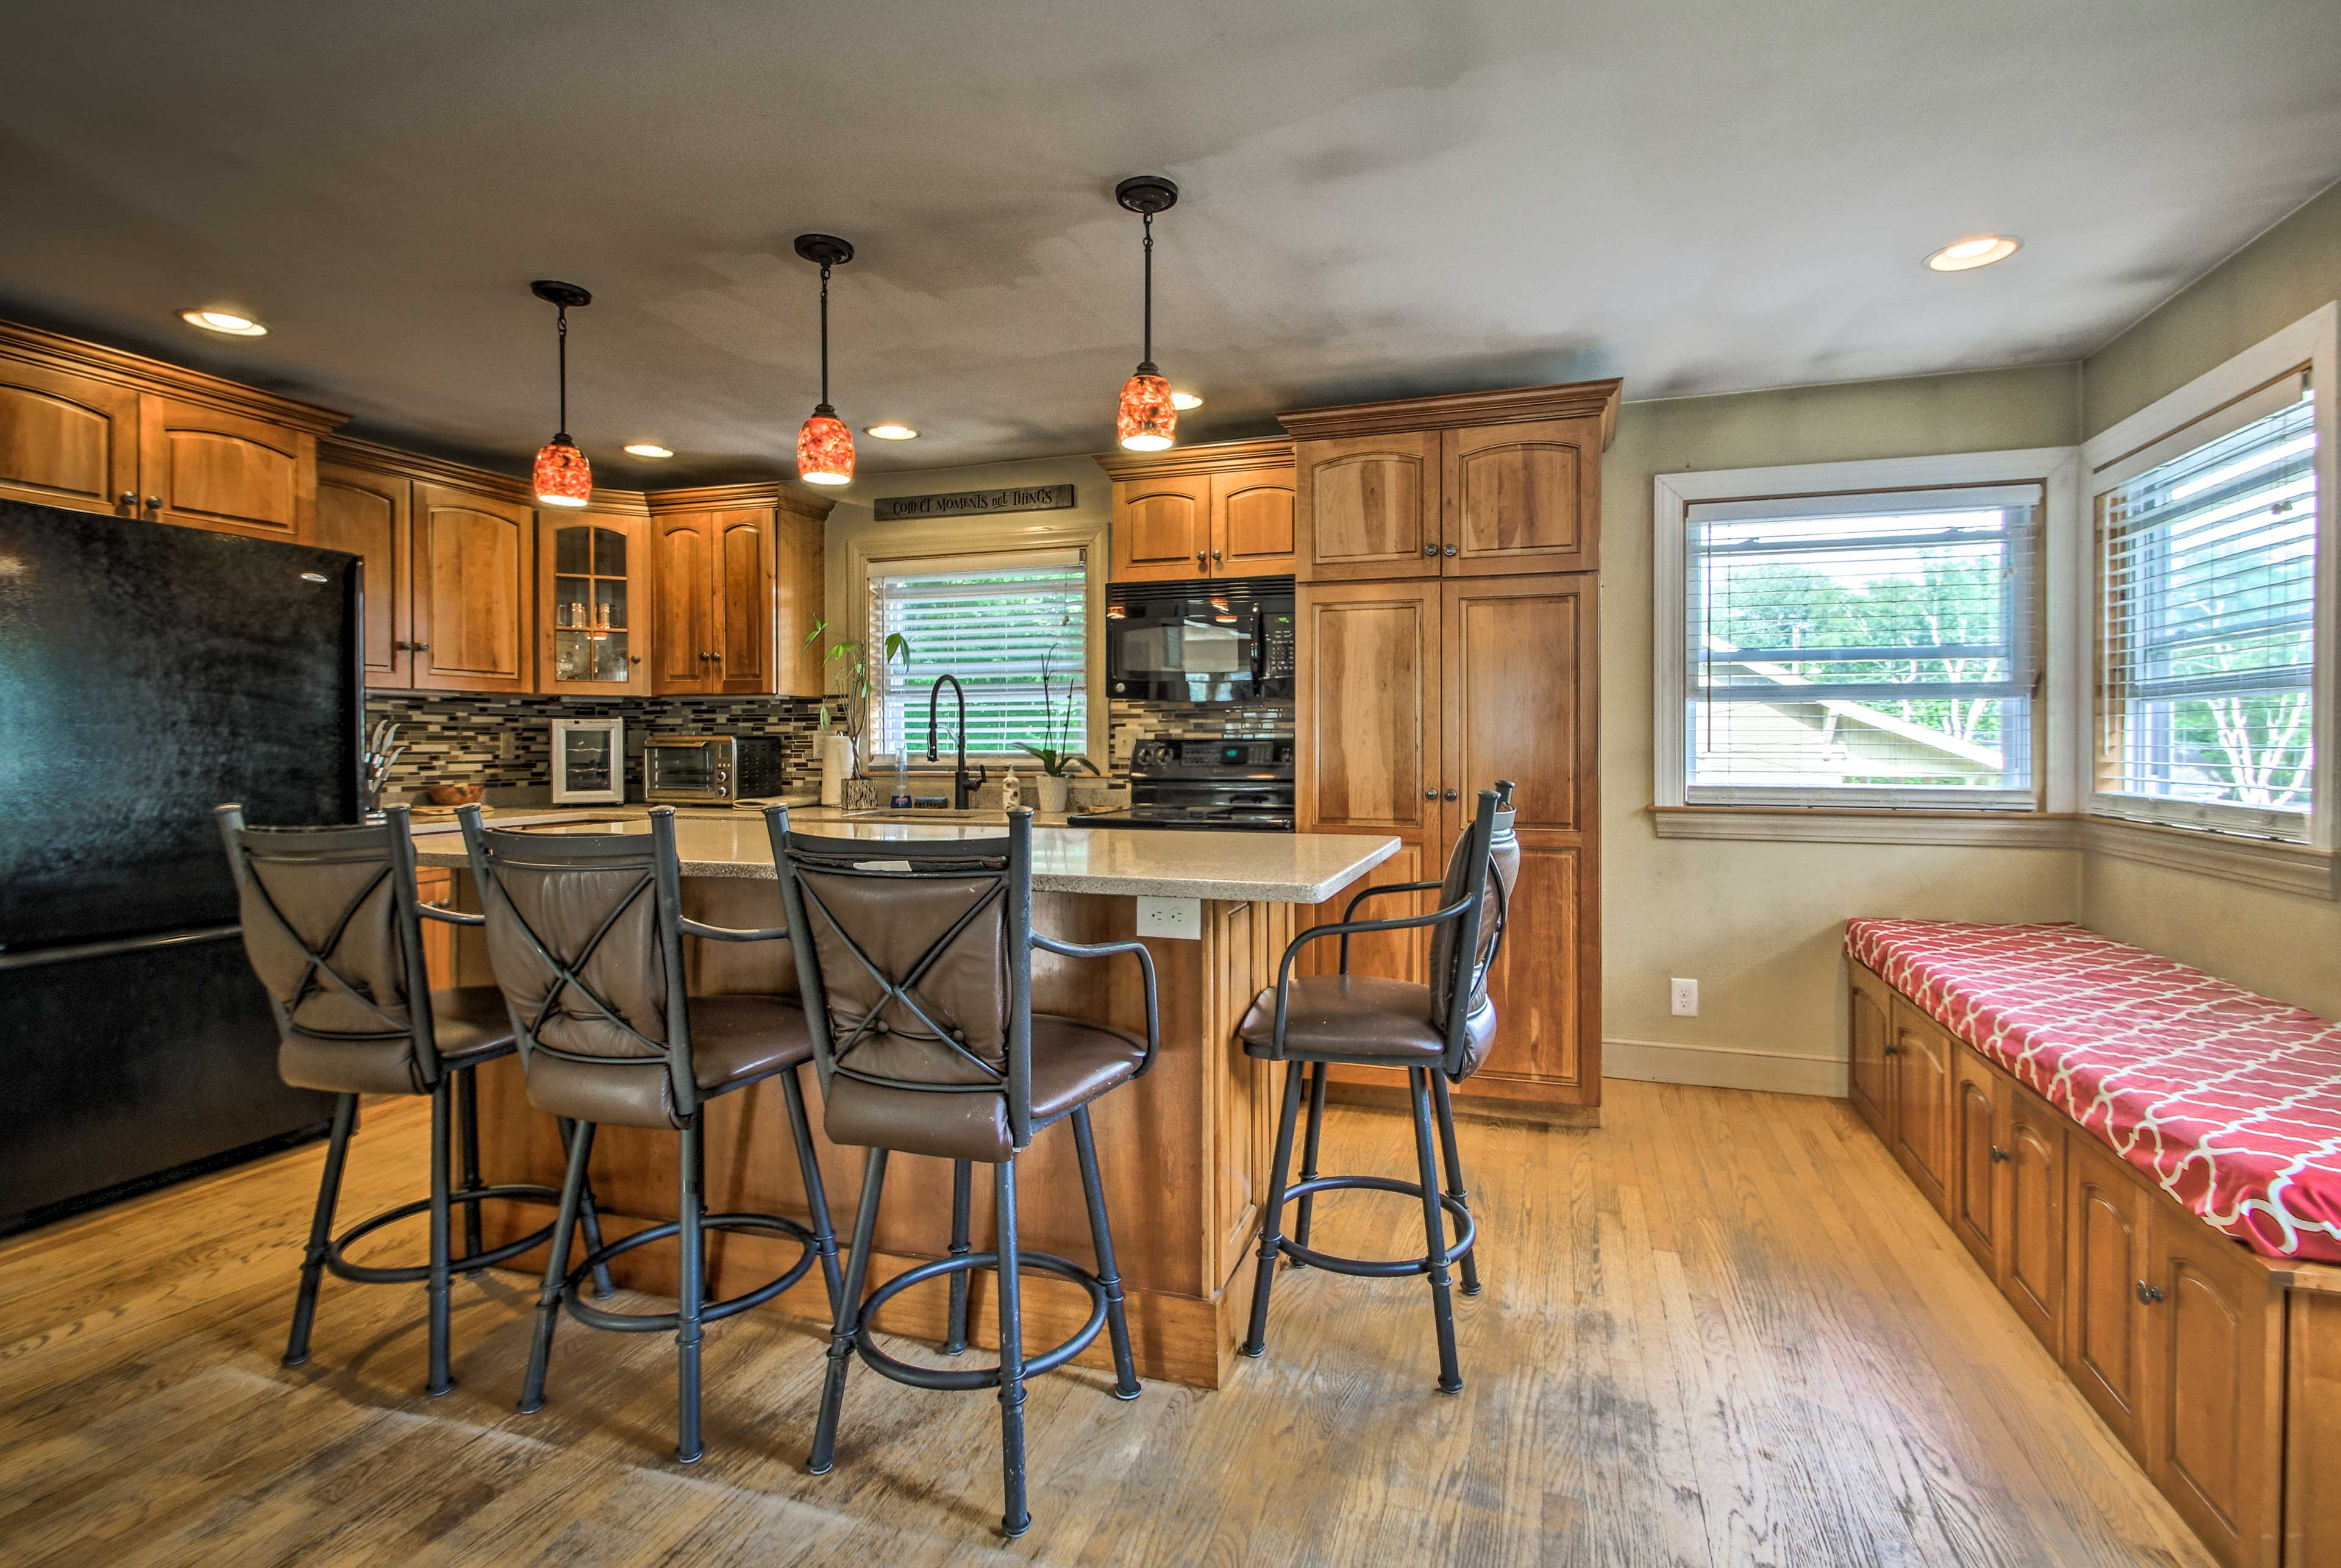 Step into the kitchen to find a large center island with bar stool seating.